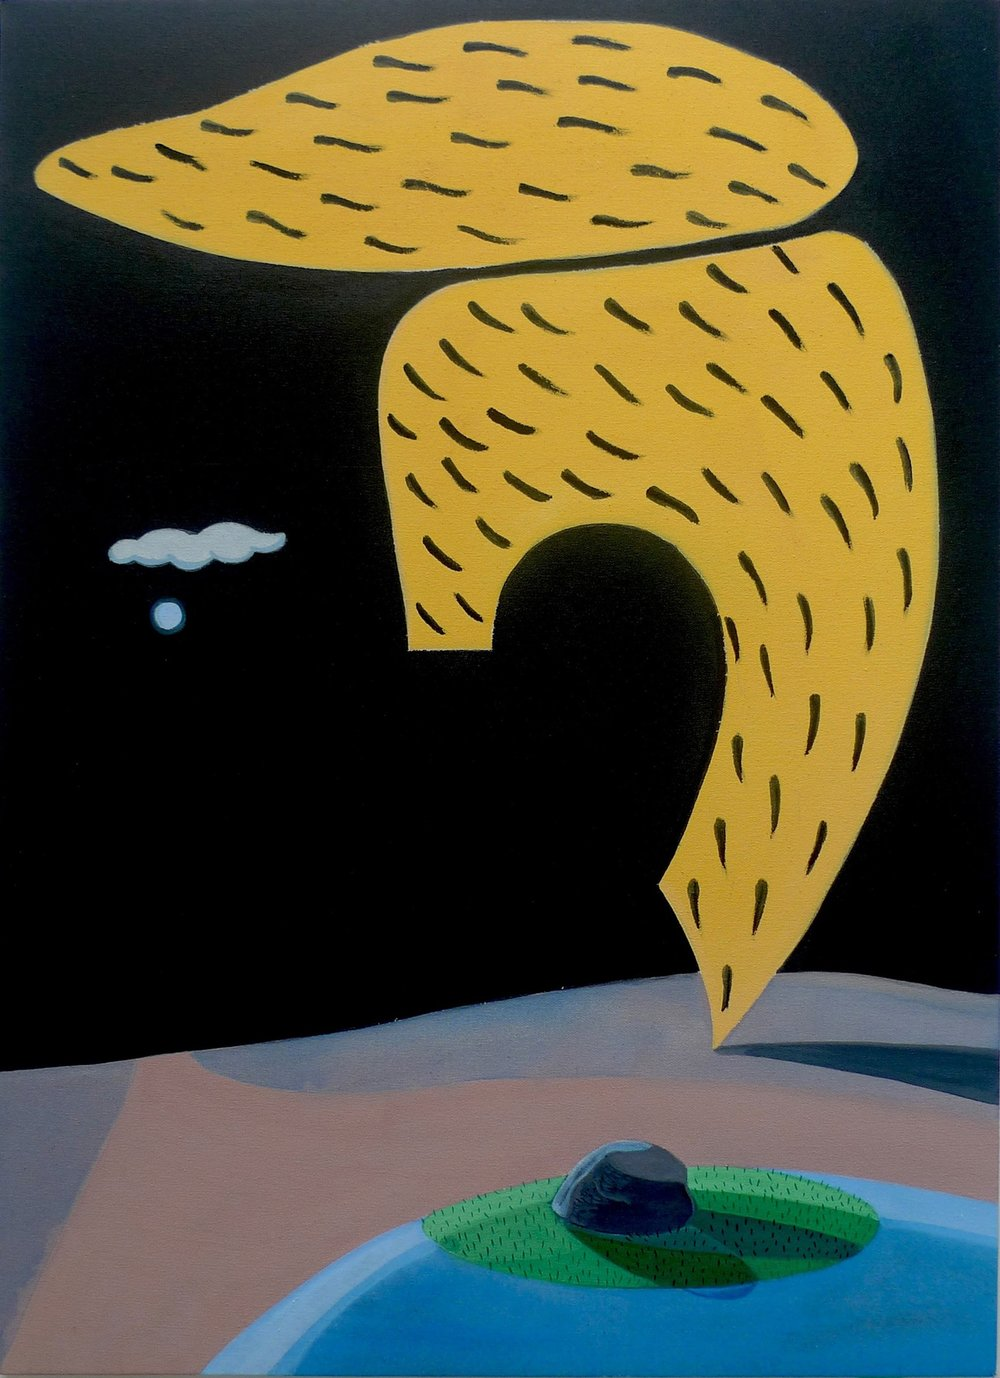 Chance Encounter of Hairline, Moon and Cloud  2015 Acrylic on Canvas, 100 x 73 cm  Private Collection